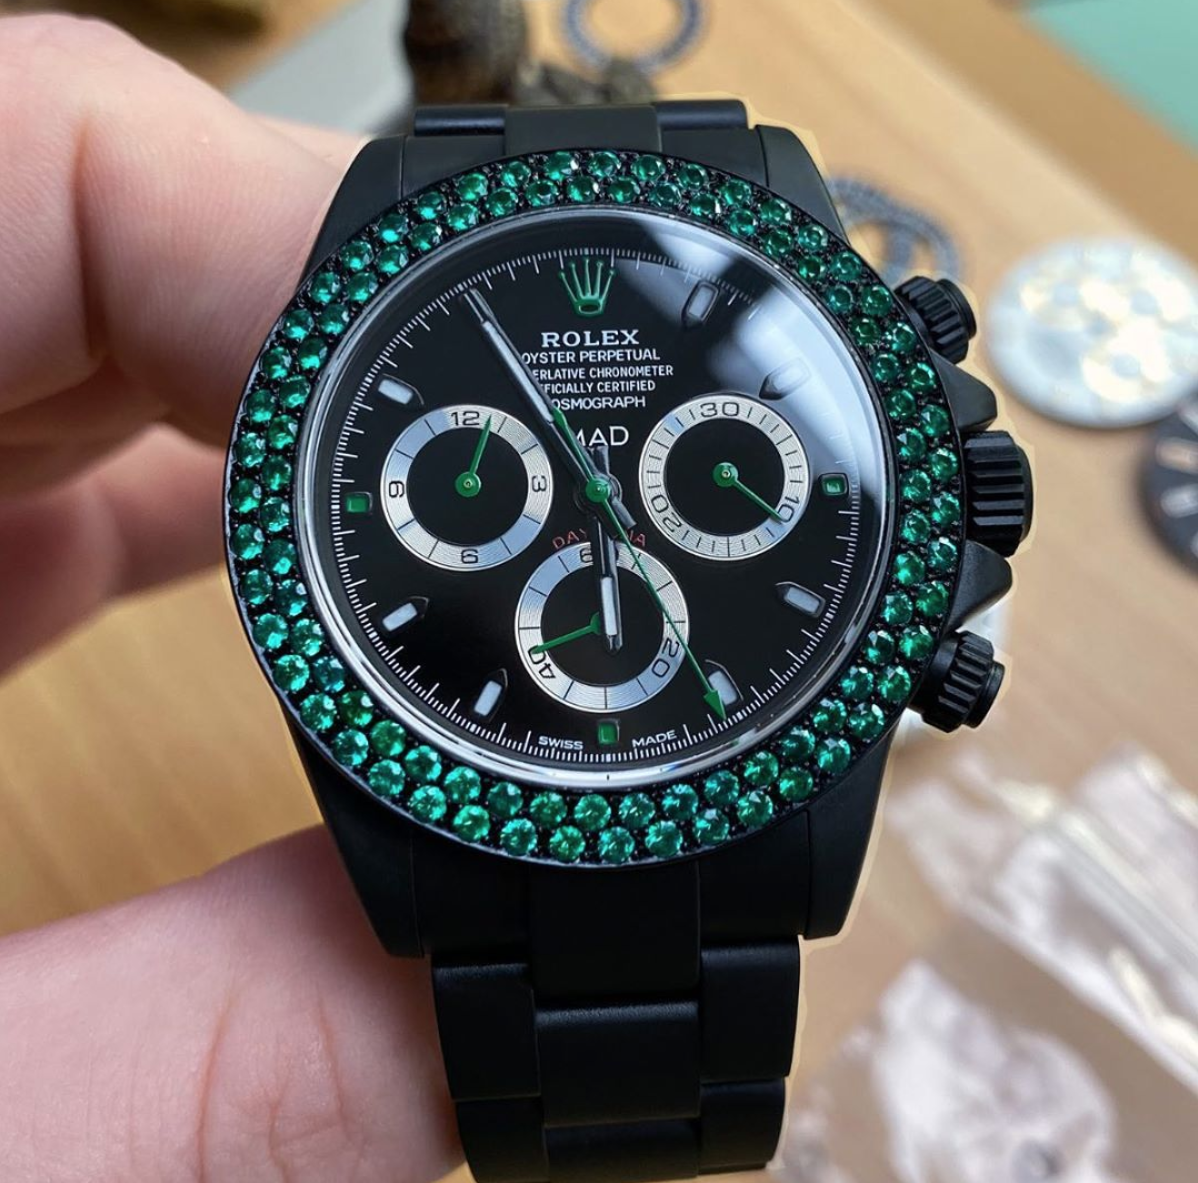 Customised Watches: Watchmaking Crime or Horologically Sublime?